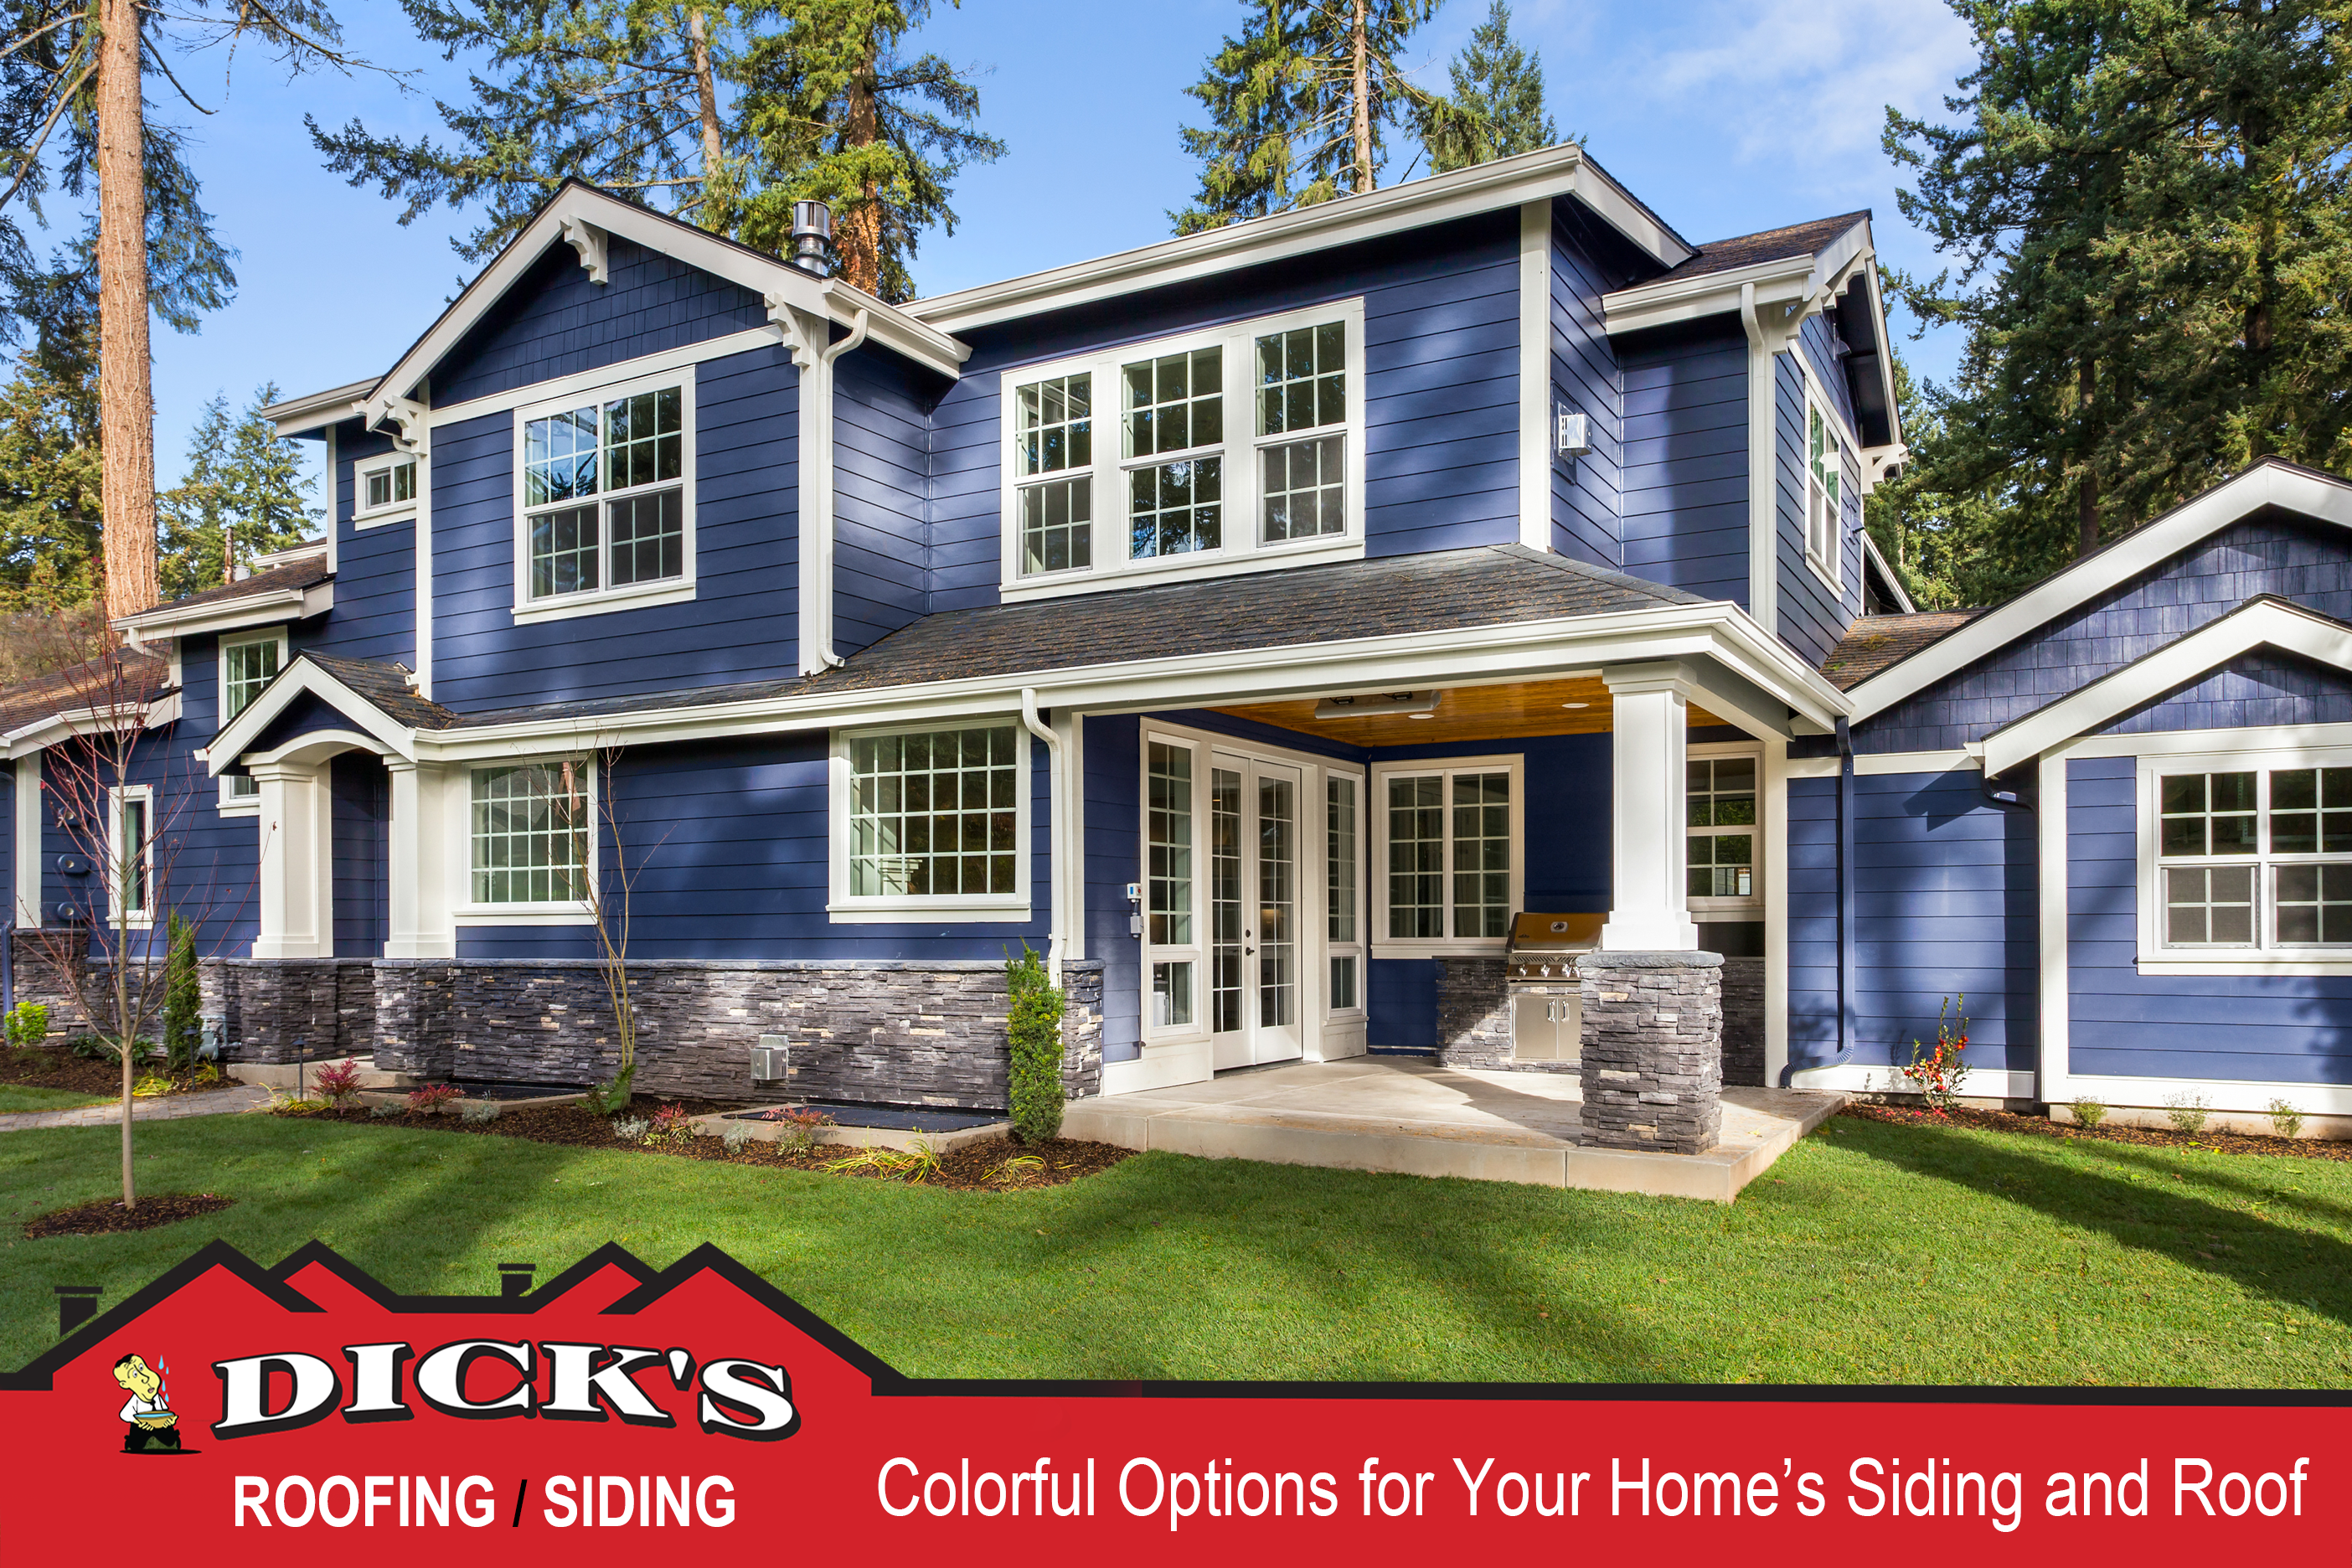 Colorful siding | Dick's Roofing